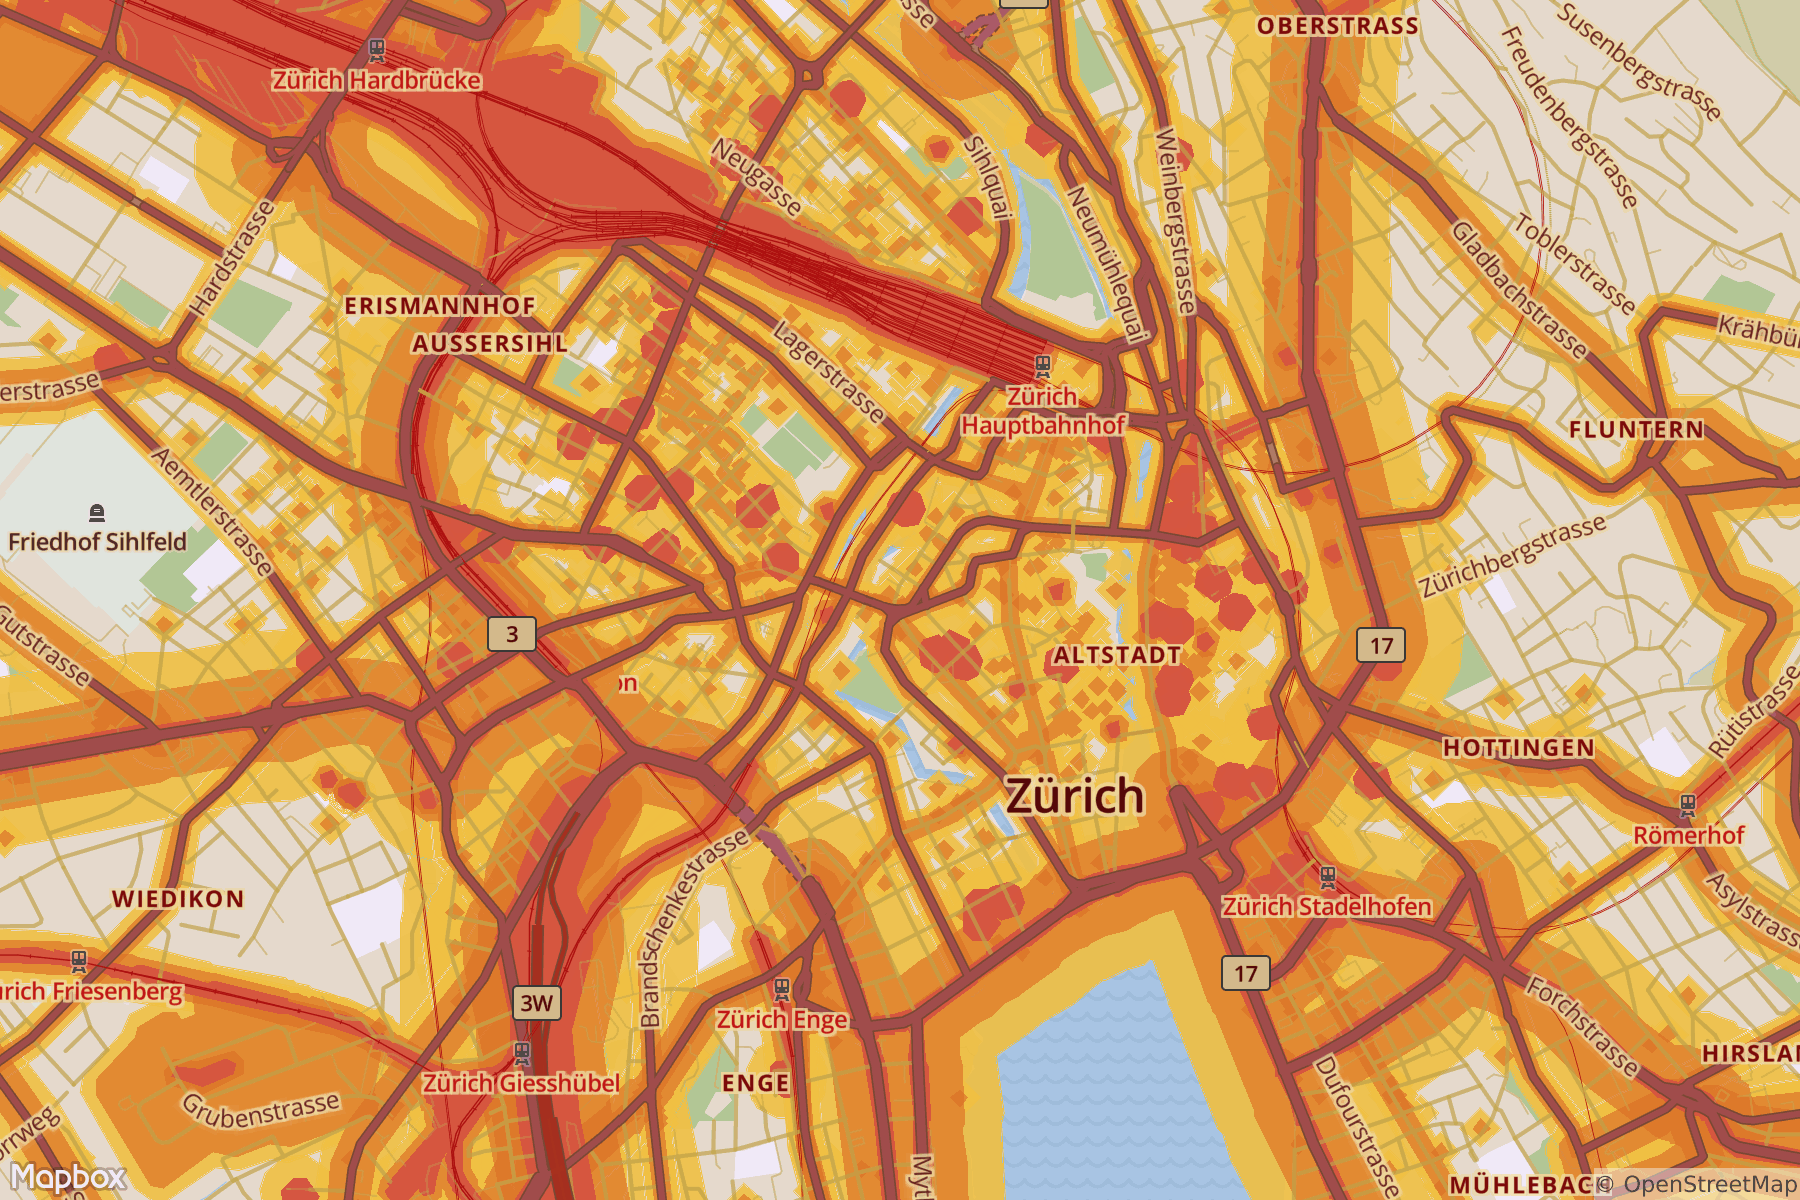 Noise map of Zurich